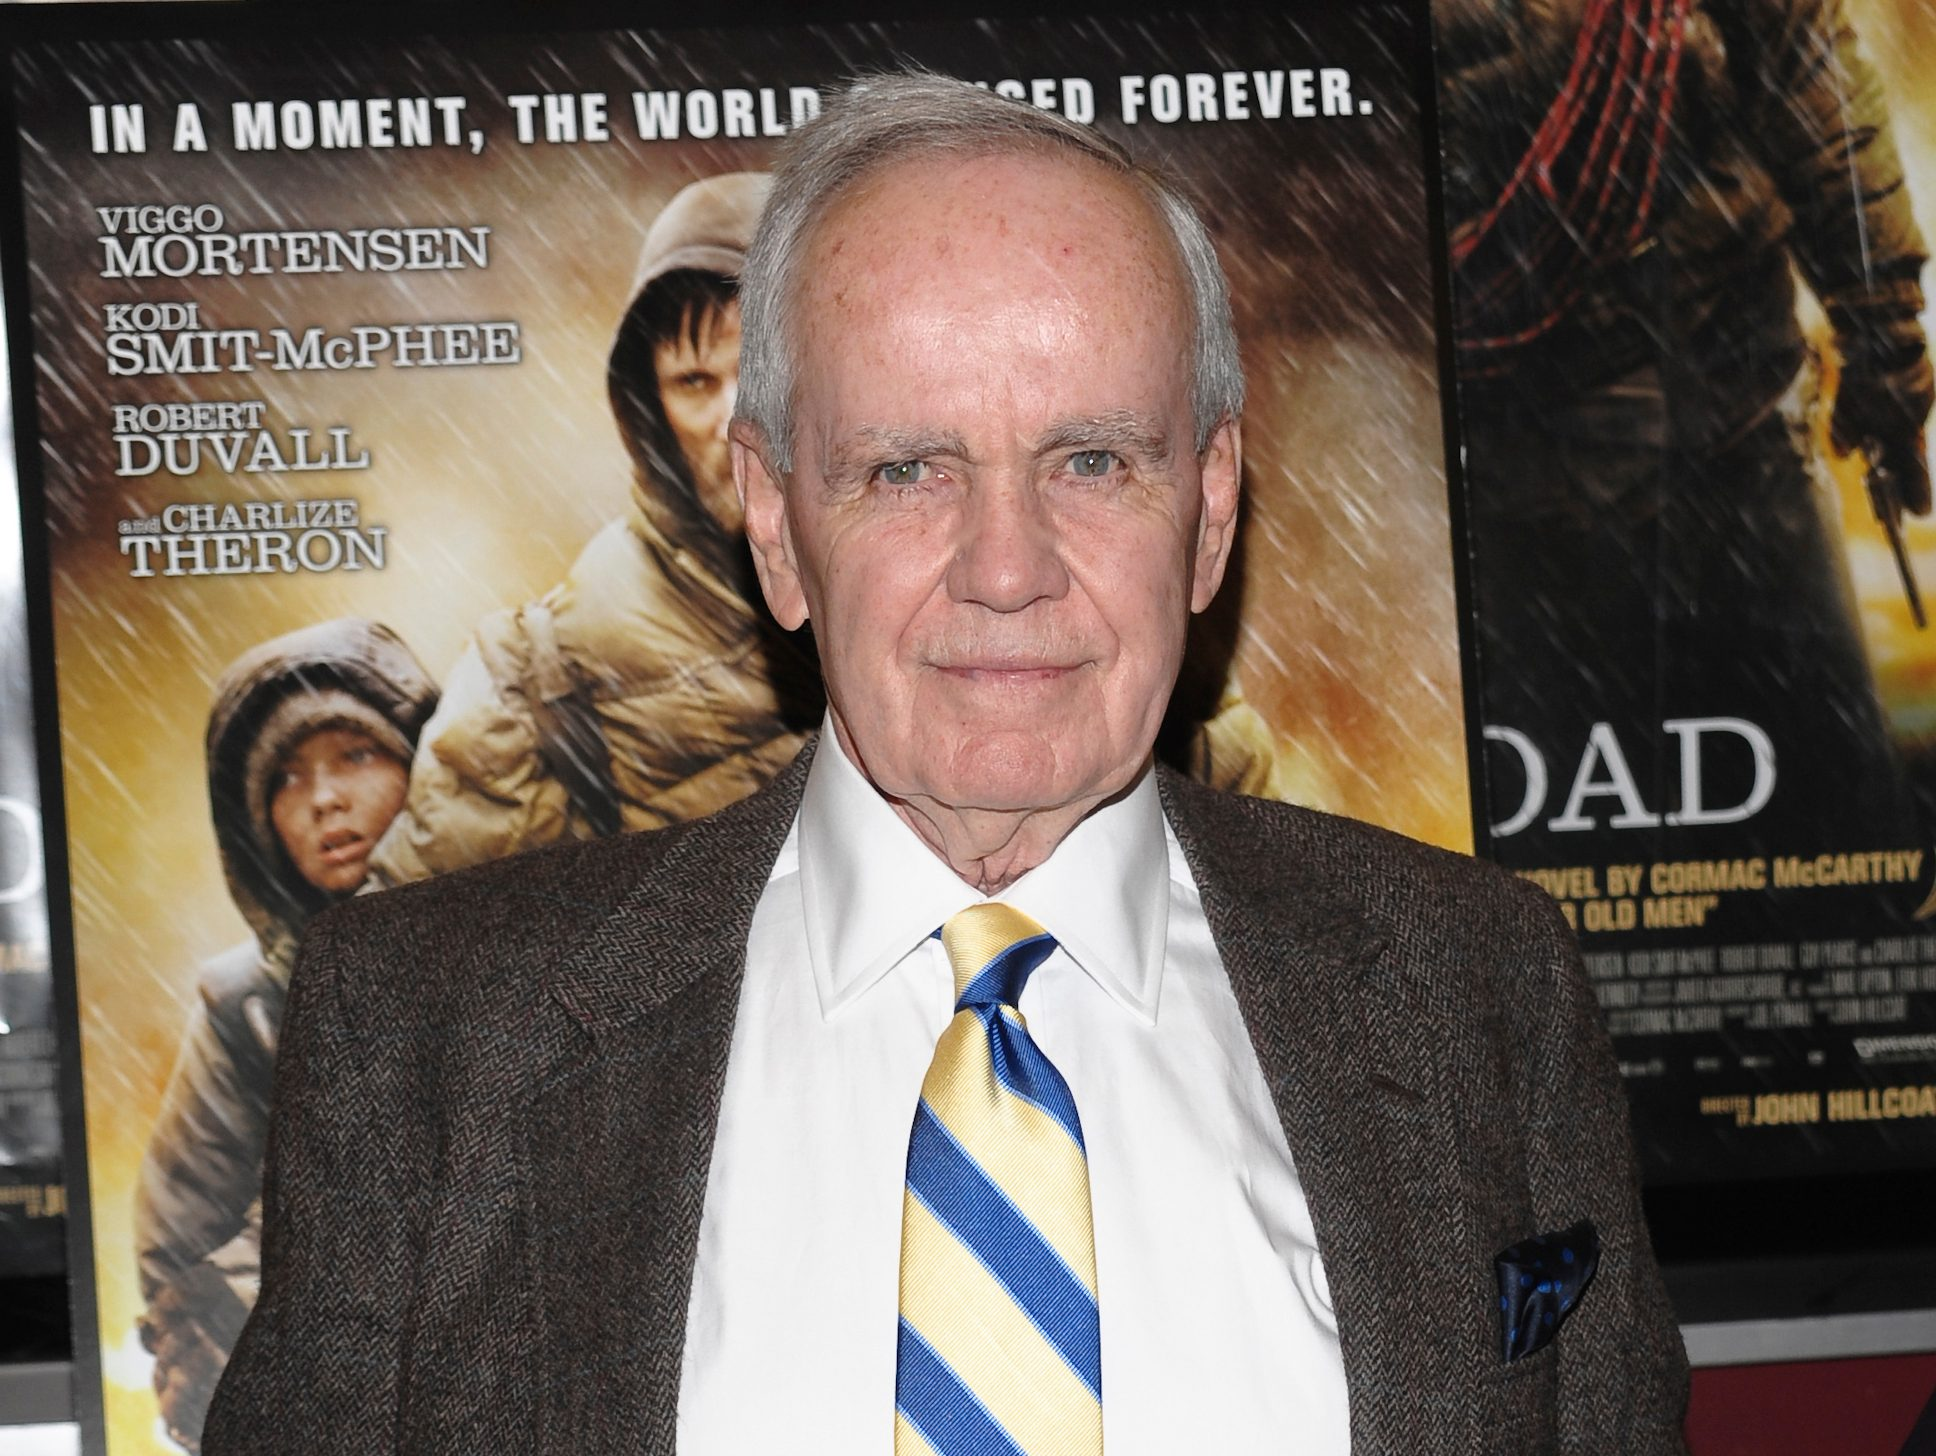 A Road Not Taken: Verified Cormac McCarthy Account Is Fake - snopes